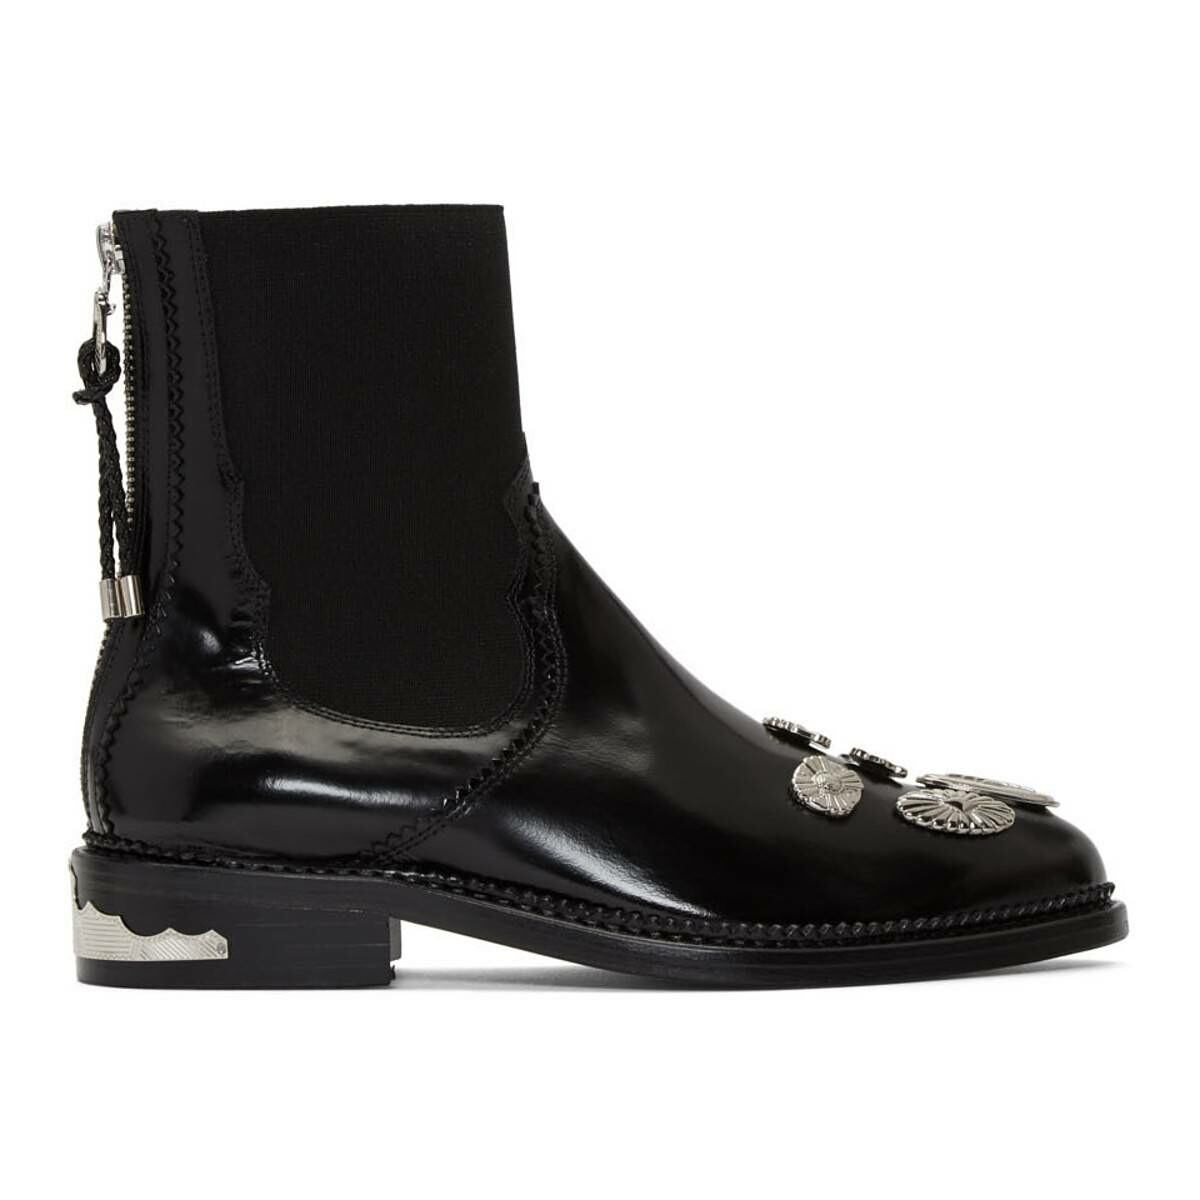 Toga Pulla Black Hardware Boots Ssense USA WOMEN Women SHOES Womens ANKLE BOOTS